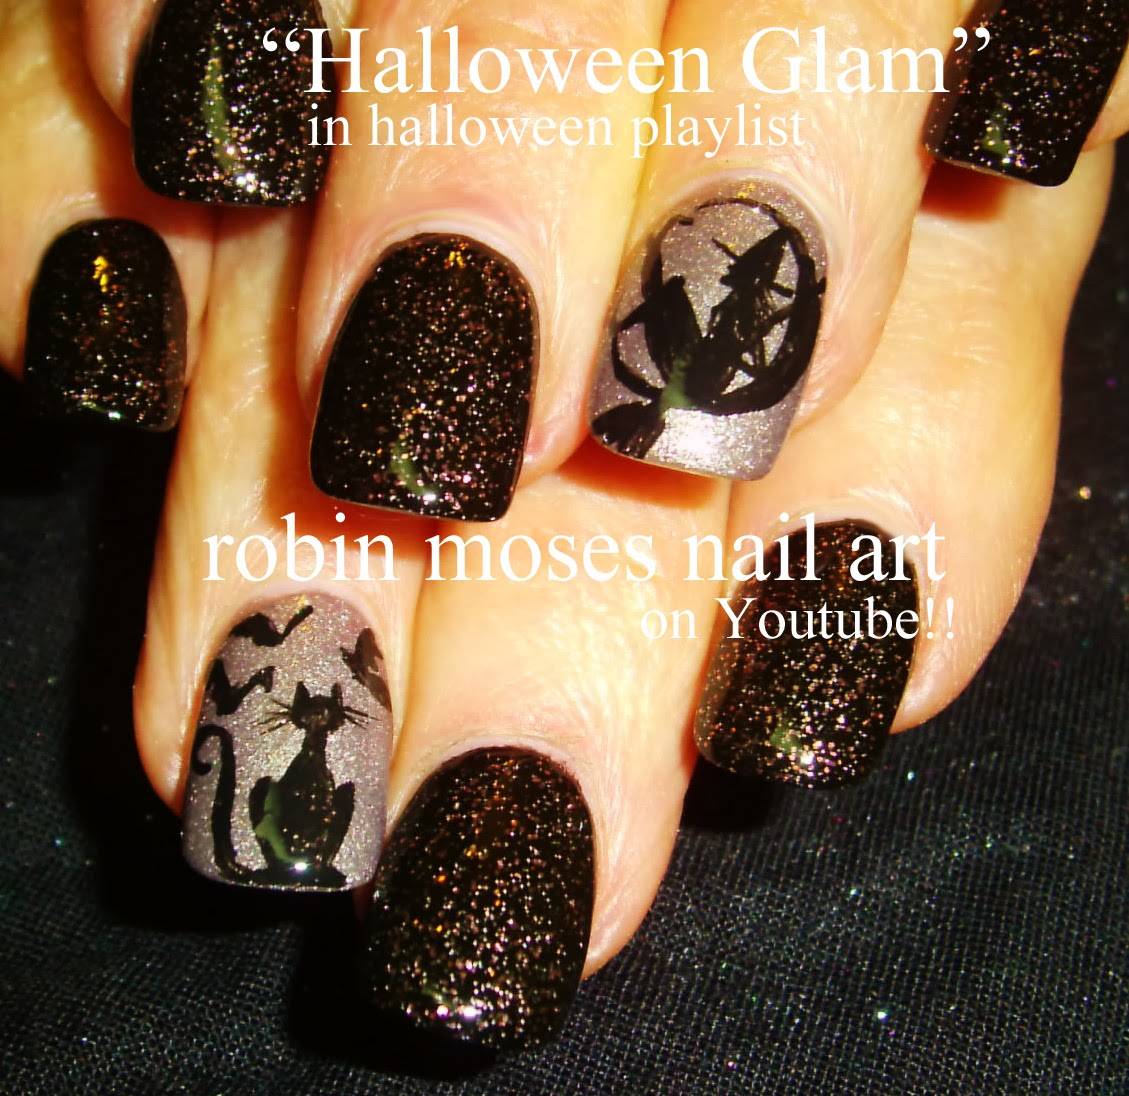 Nail art by robin moses halloween nails witch nails ghost halloween glam witch cat nail art solutioingenieria Choice Image